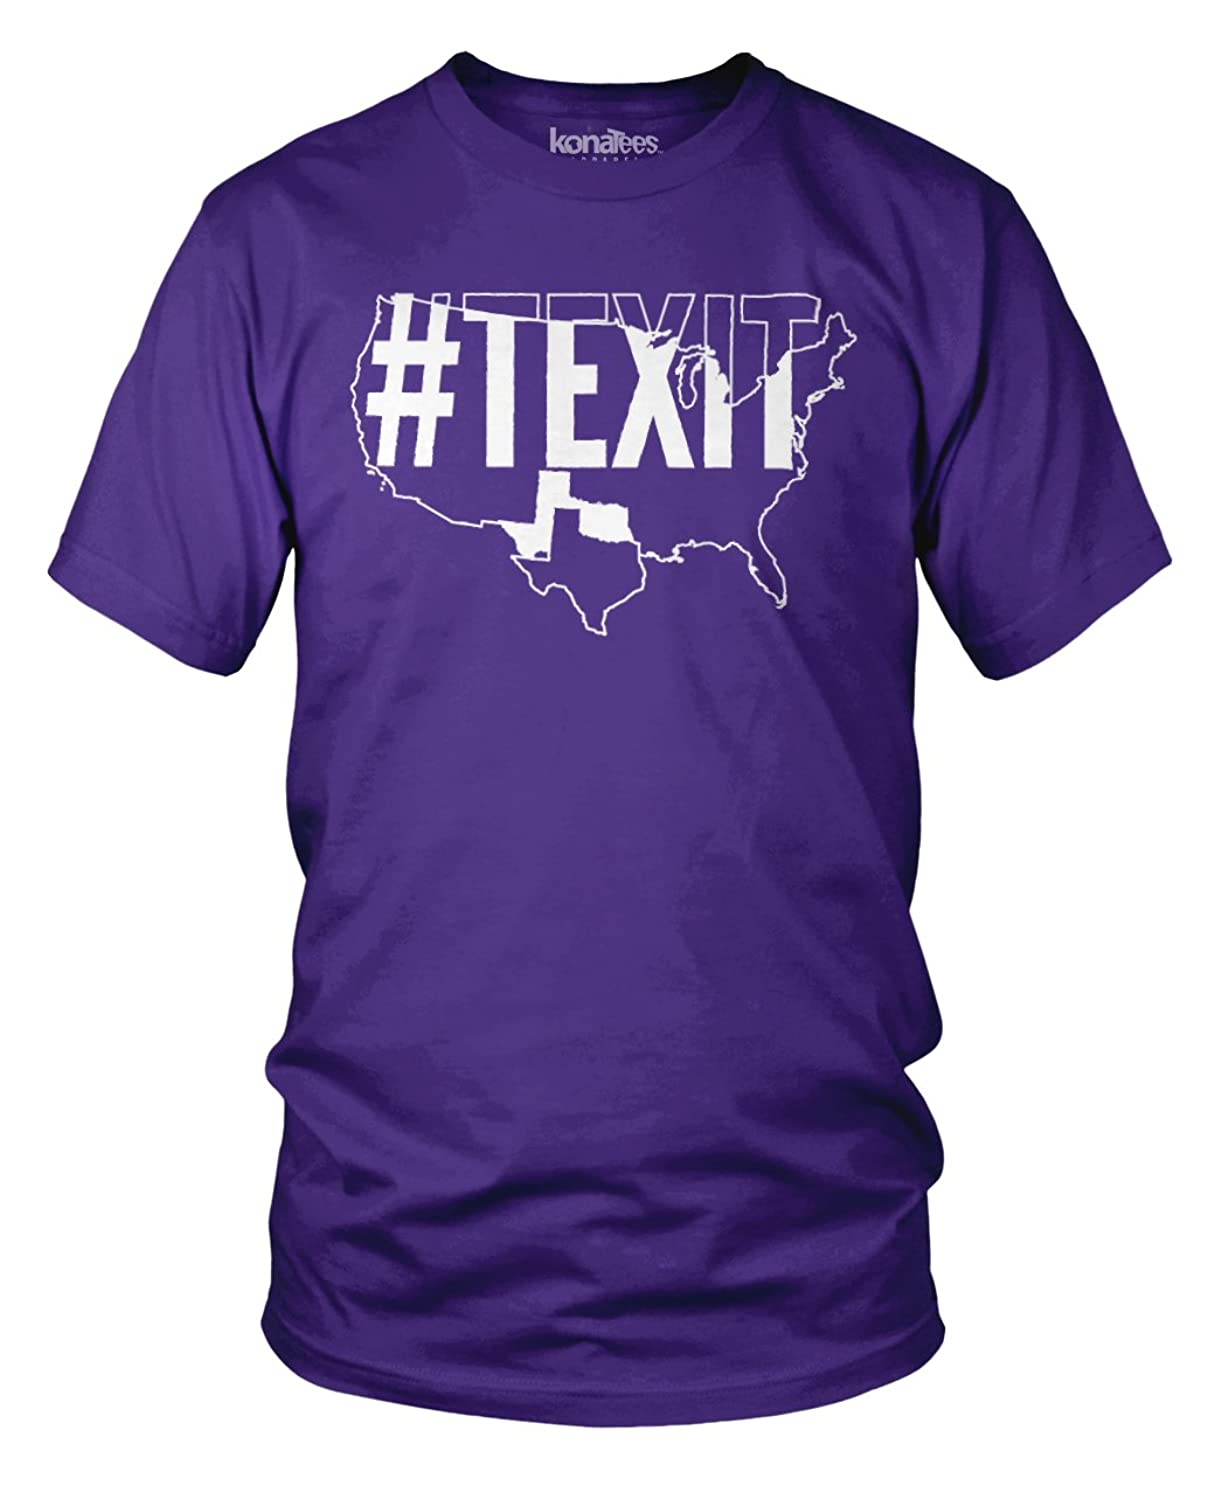 #Texit Lone Star State of Texas Secession Movement T-Shirt